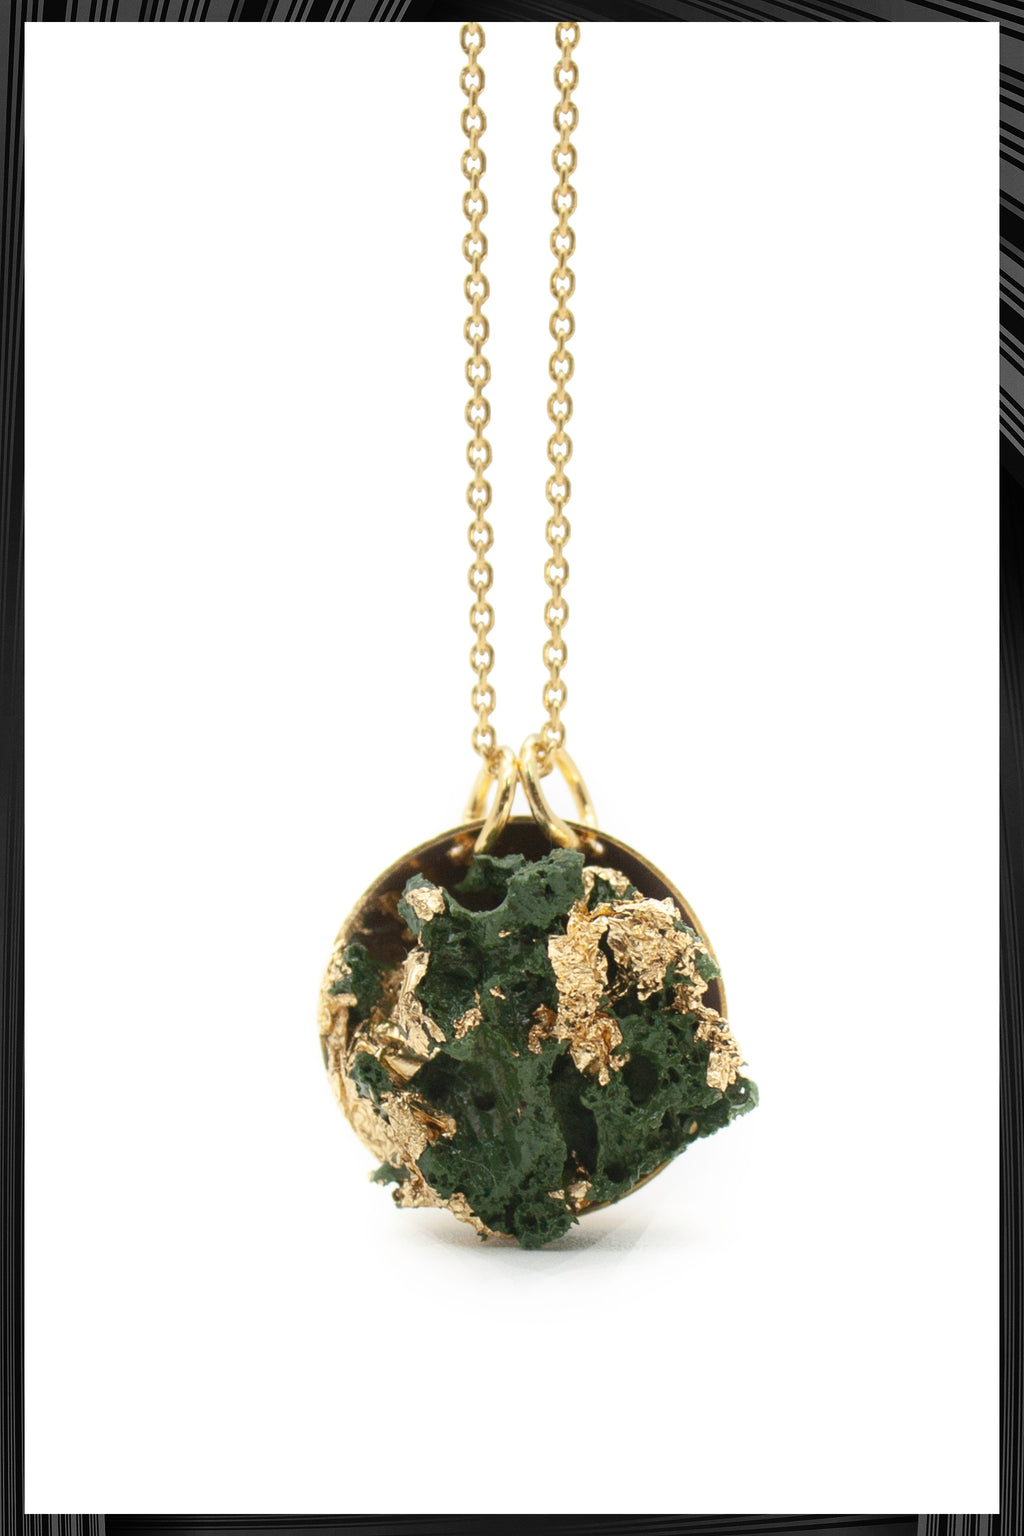 Green & Gold Leaf Pendant Necklace | Free Delivery - Quick Shipping